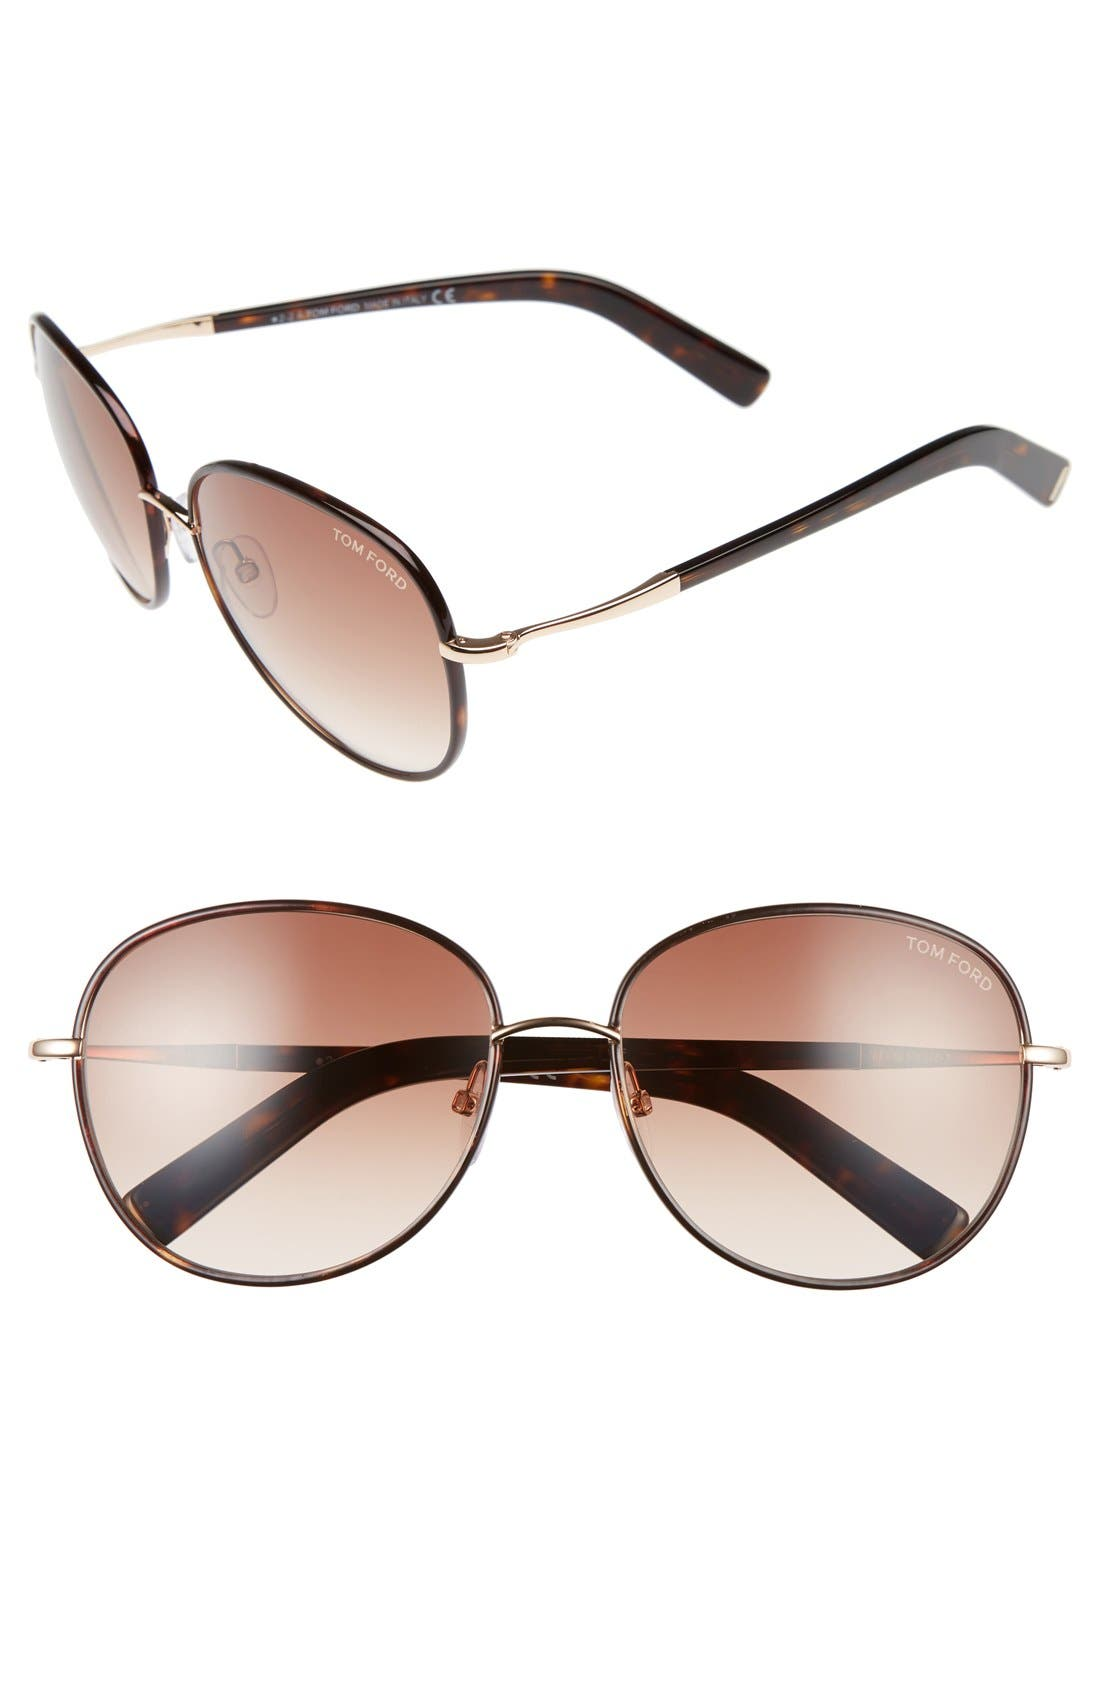 Georgia 59mm Sunglasses,                             Main thumbnail 1, color,                             ROSE GOLD/ HAVANA/ BROWN